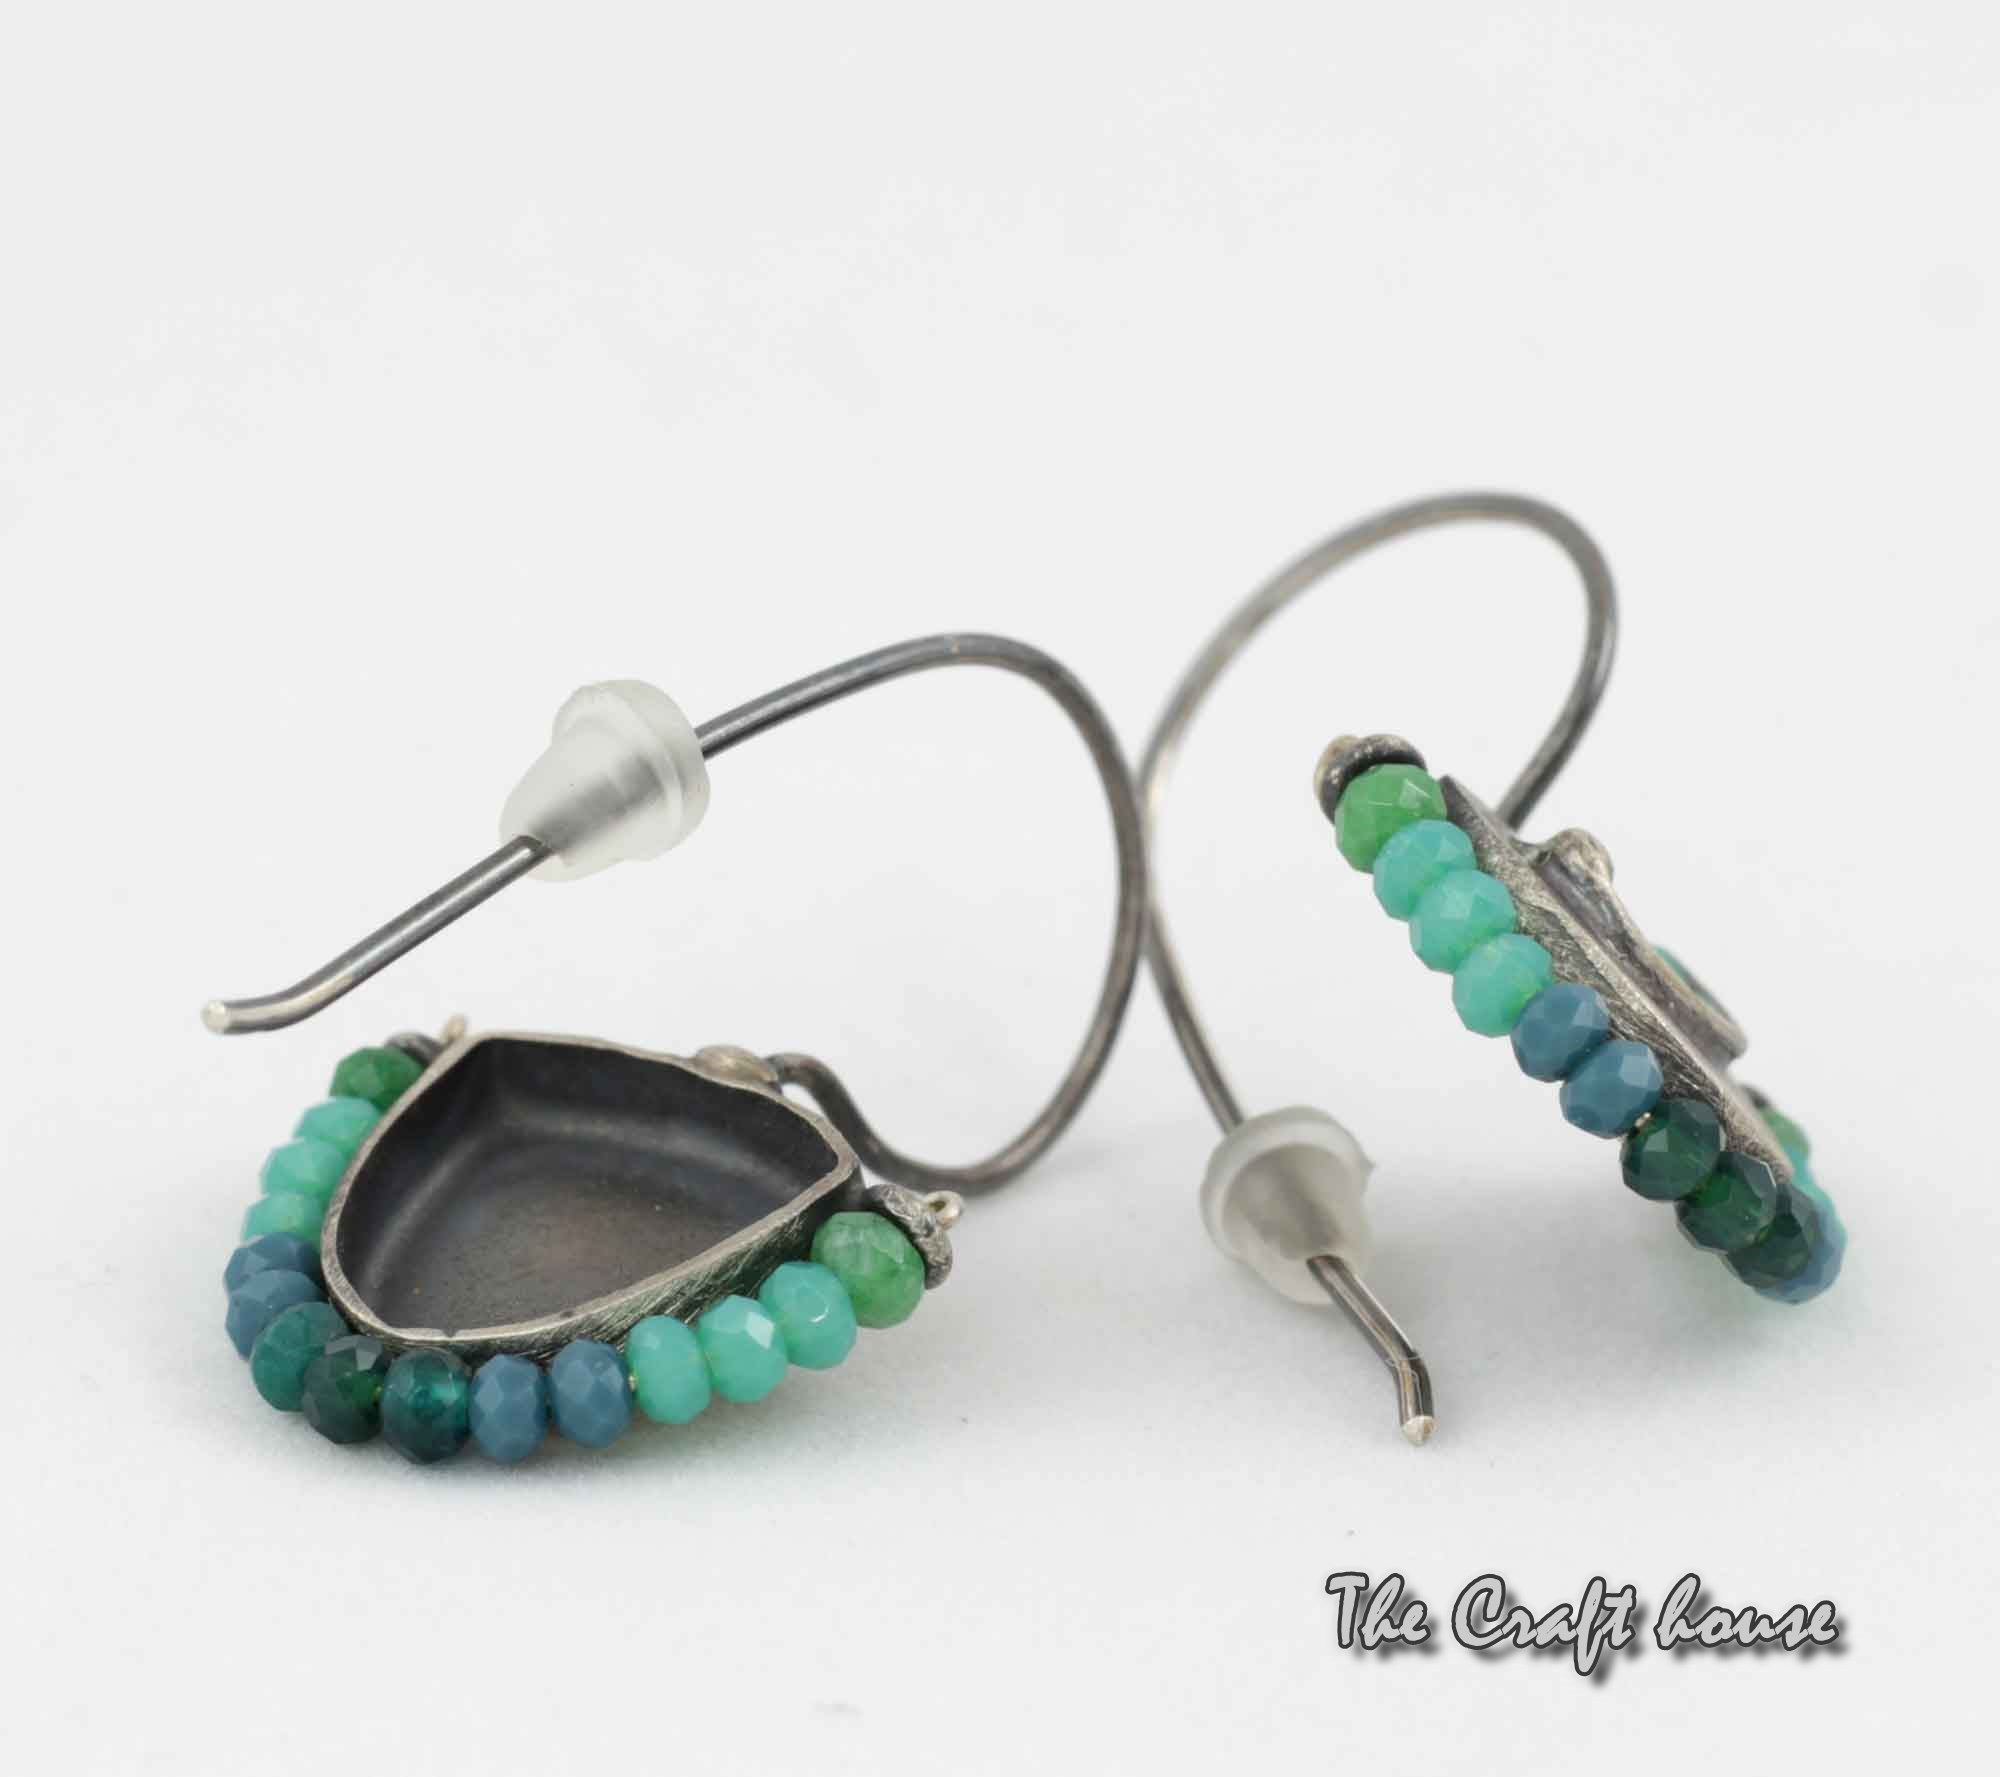 Silver earrings with Aventurine and green enamel